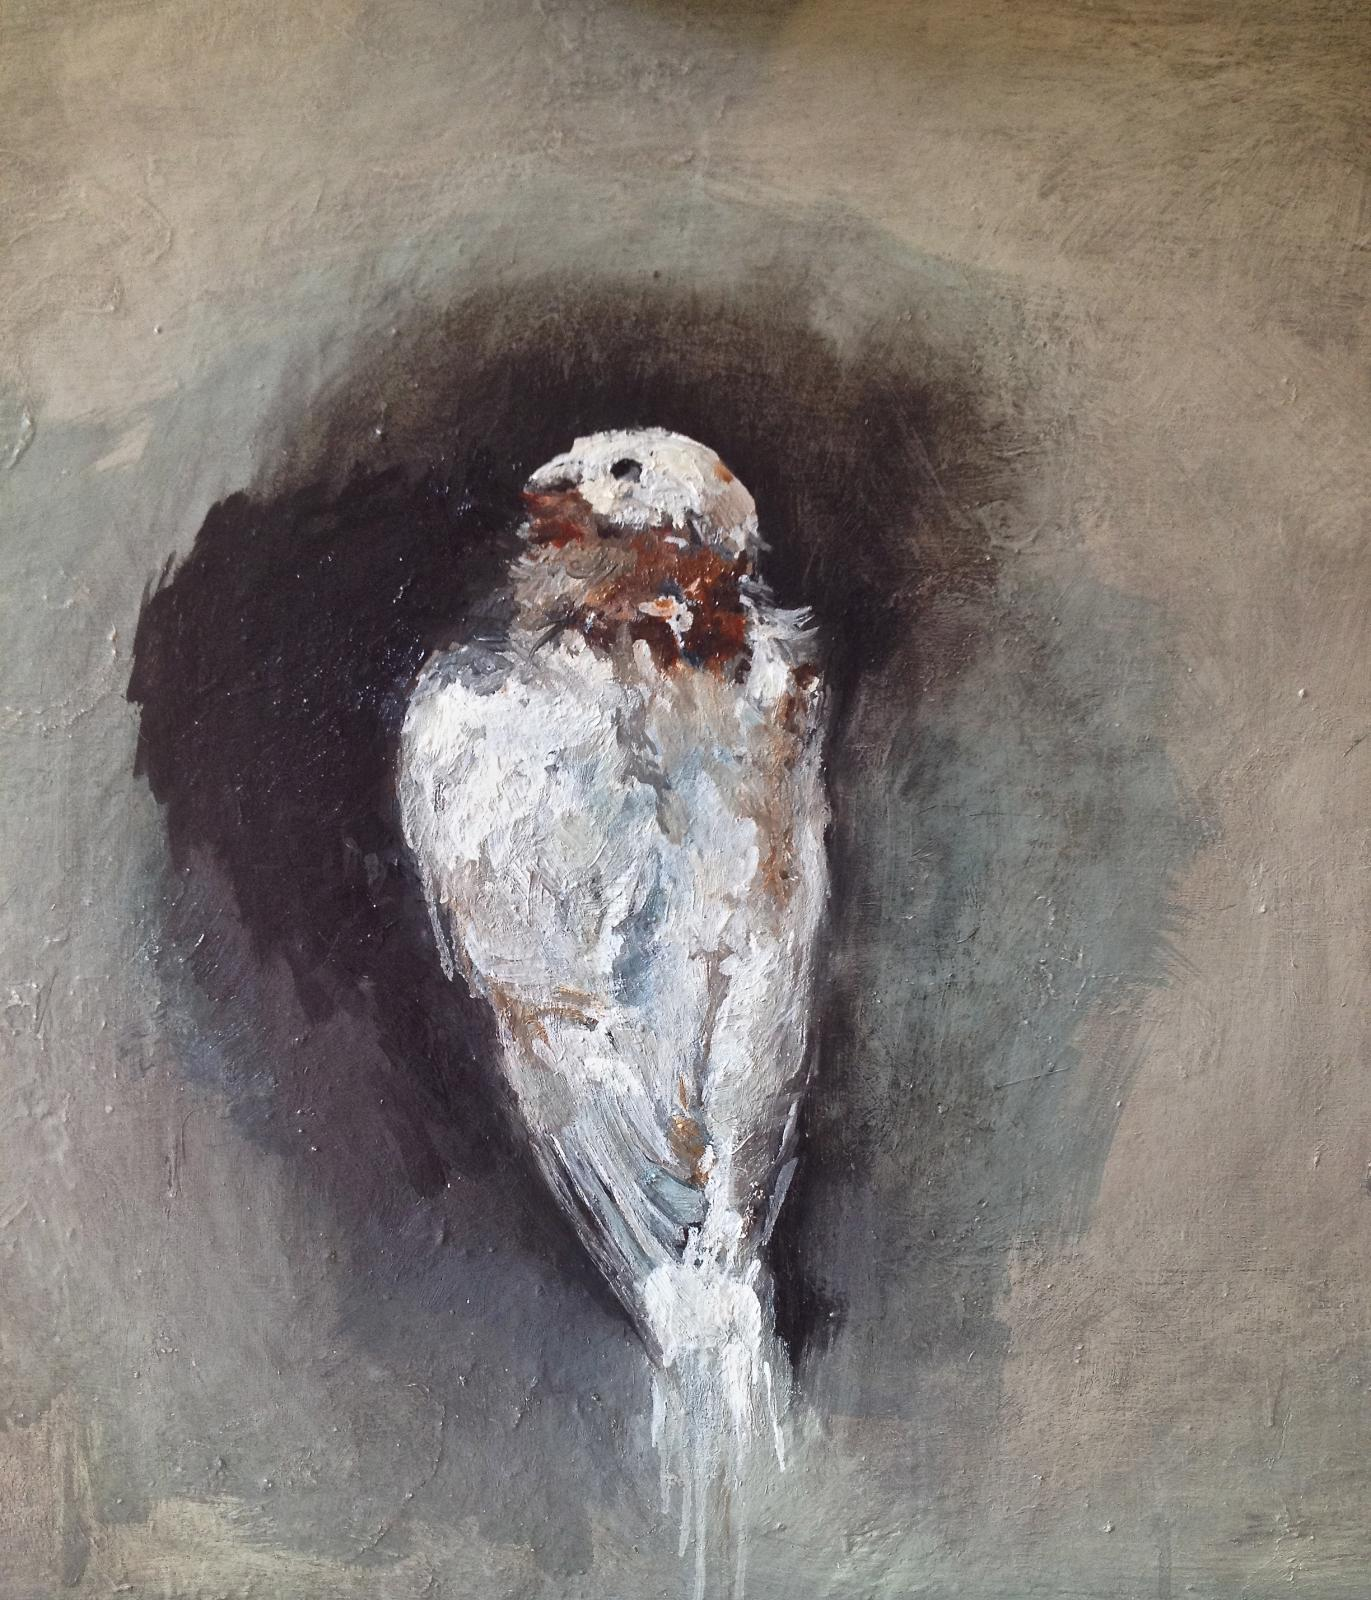 Dove 70cm x 70cm oil/canvas nzlDK1480675371.jpg